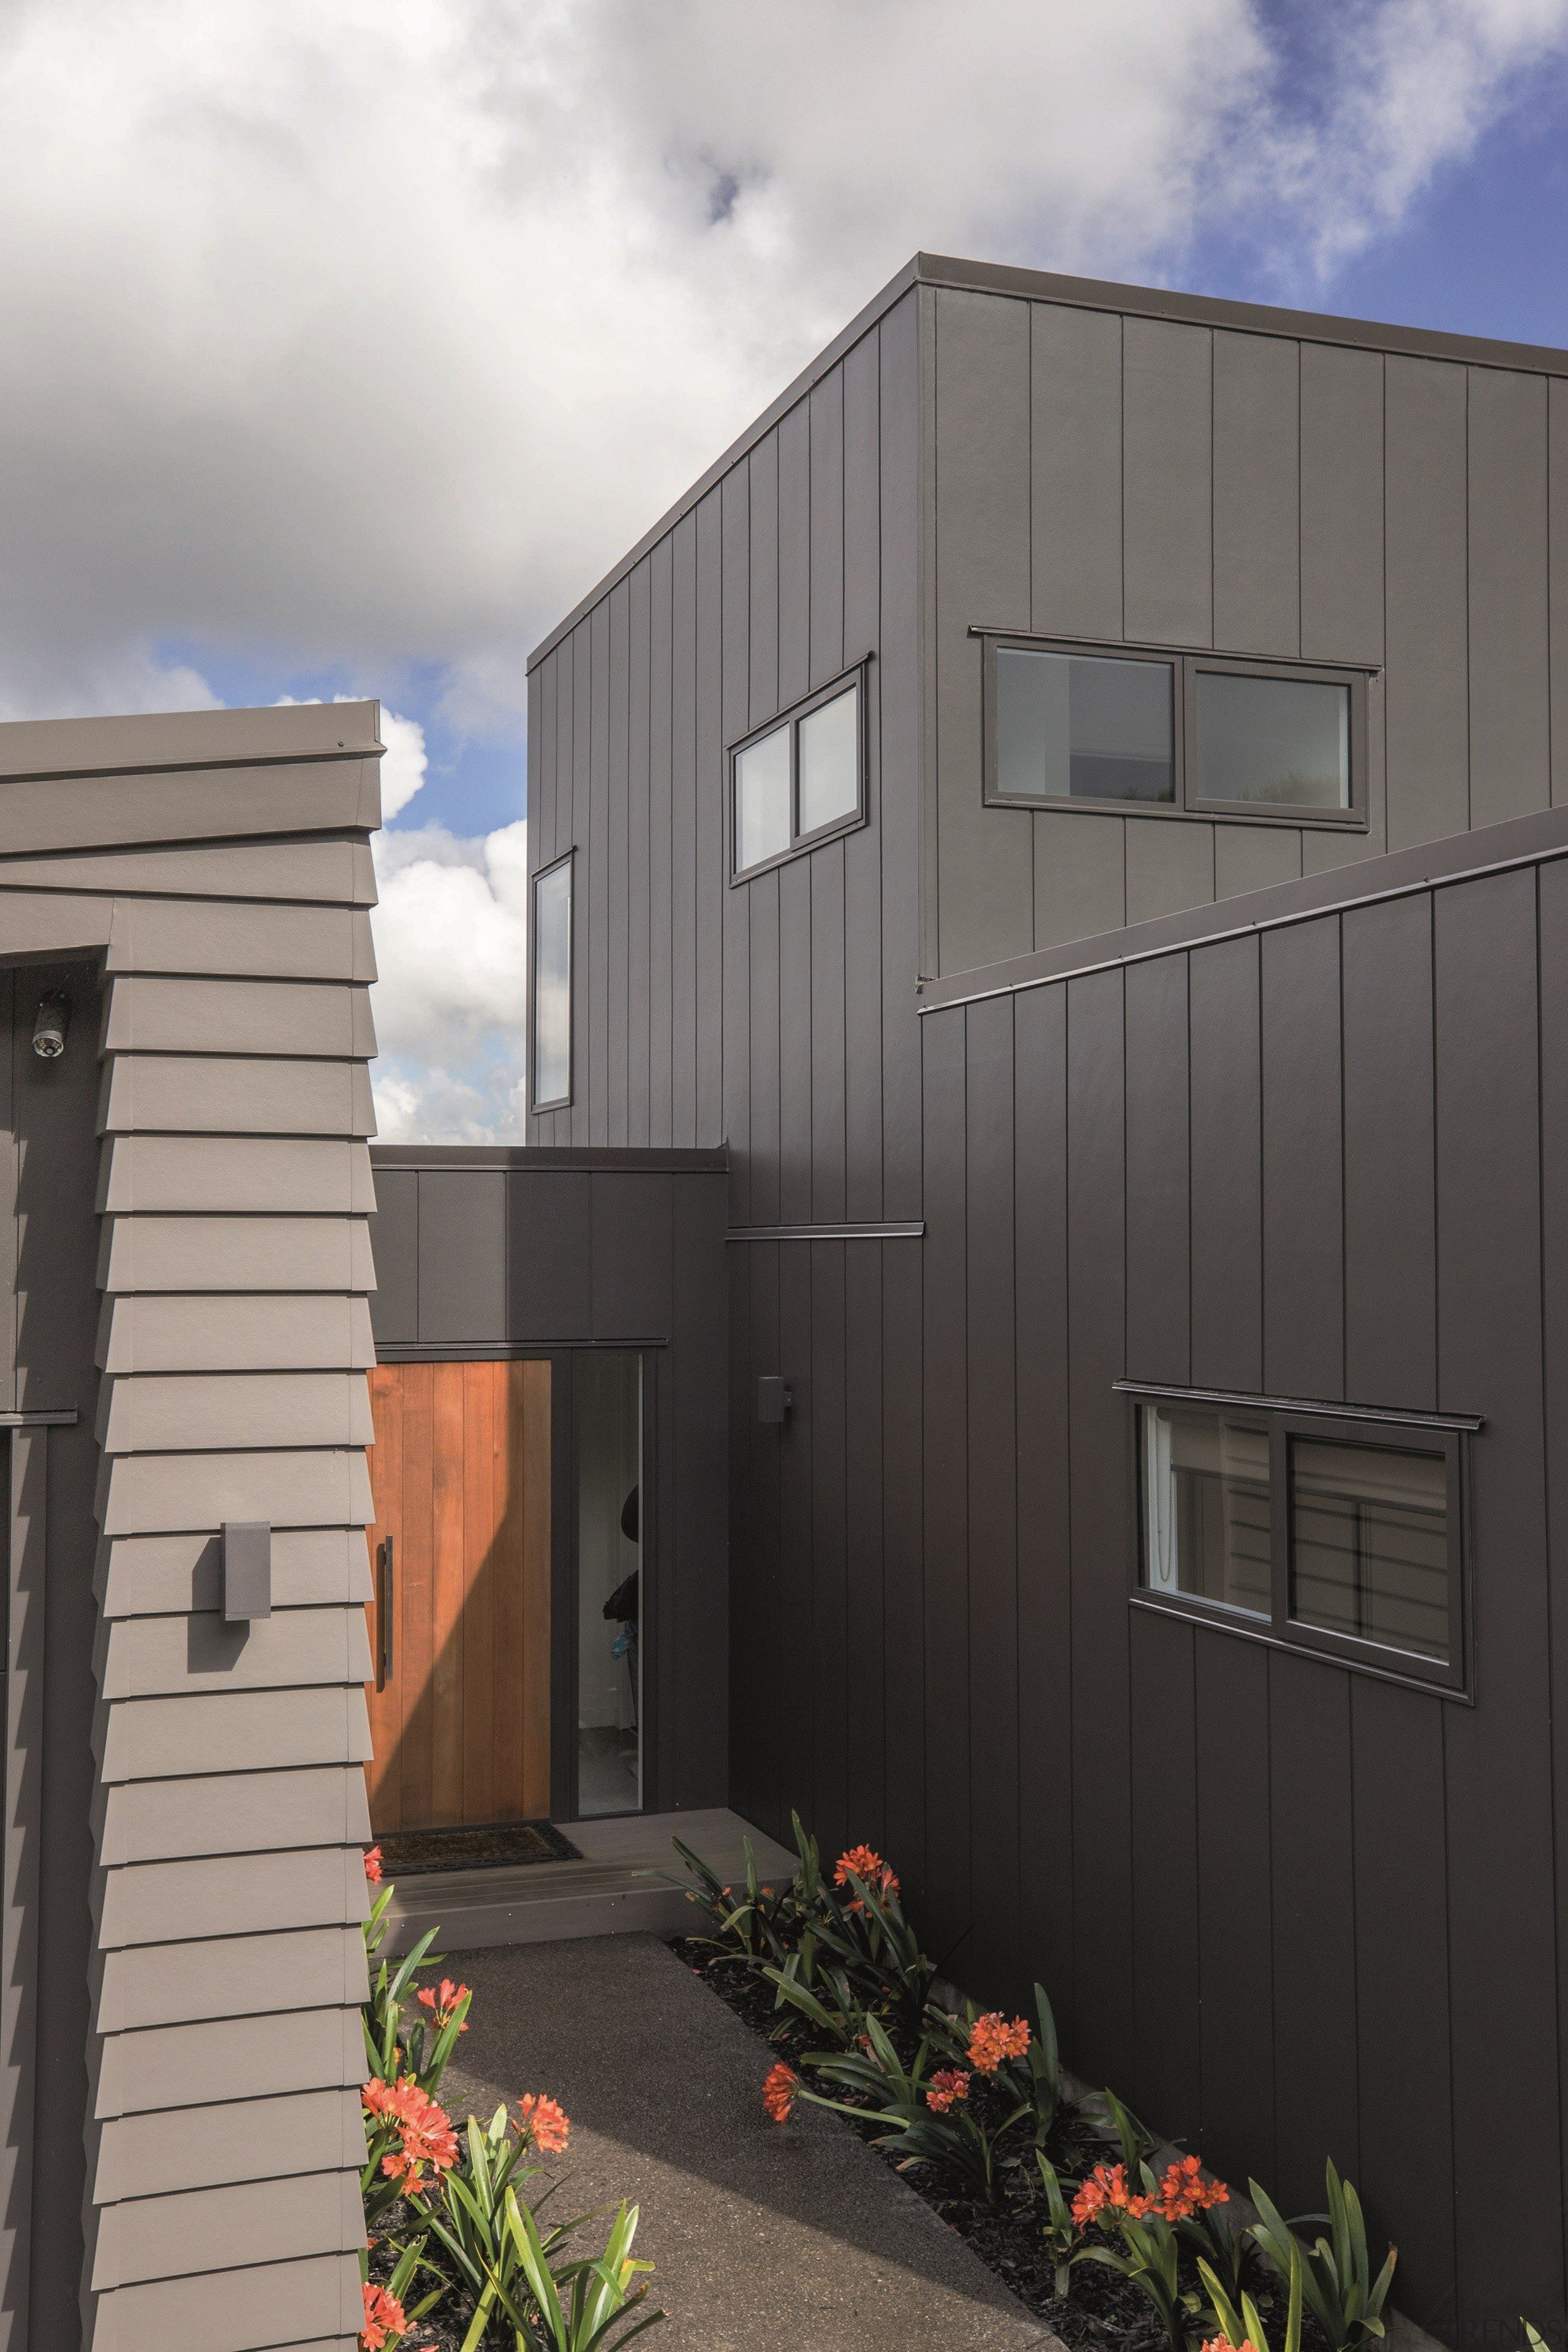 Stria Cladding and Linea Weatherboard - Stria Cladding architecture, building, elevation, facade, home, house, real estate, residential area, shed, siding, gray, black